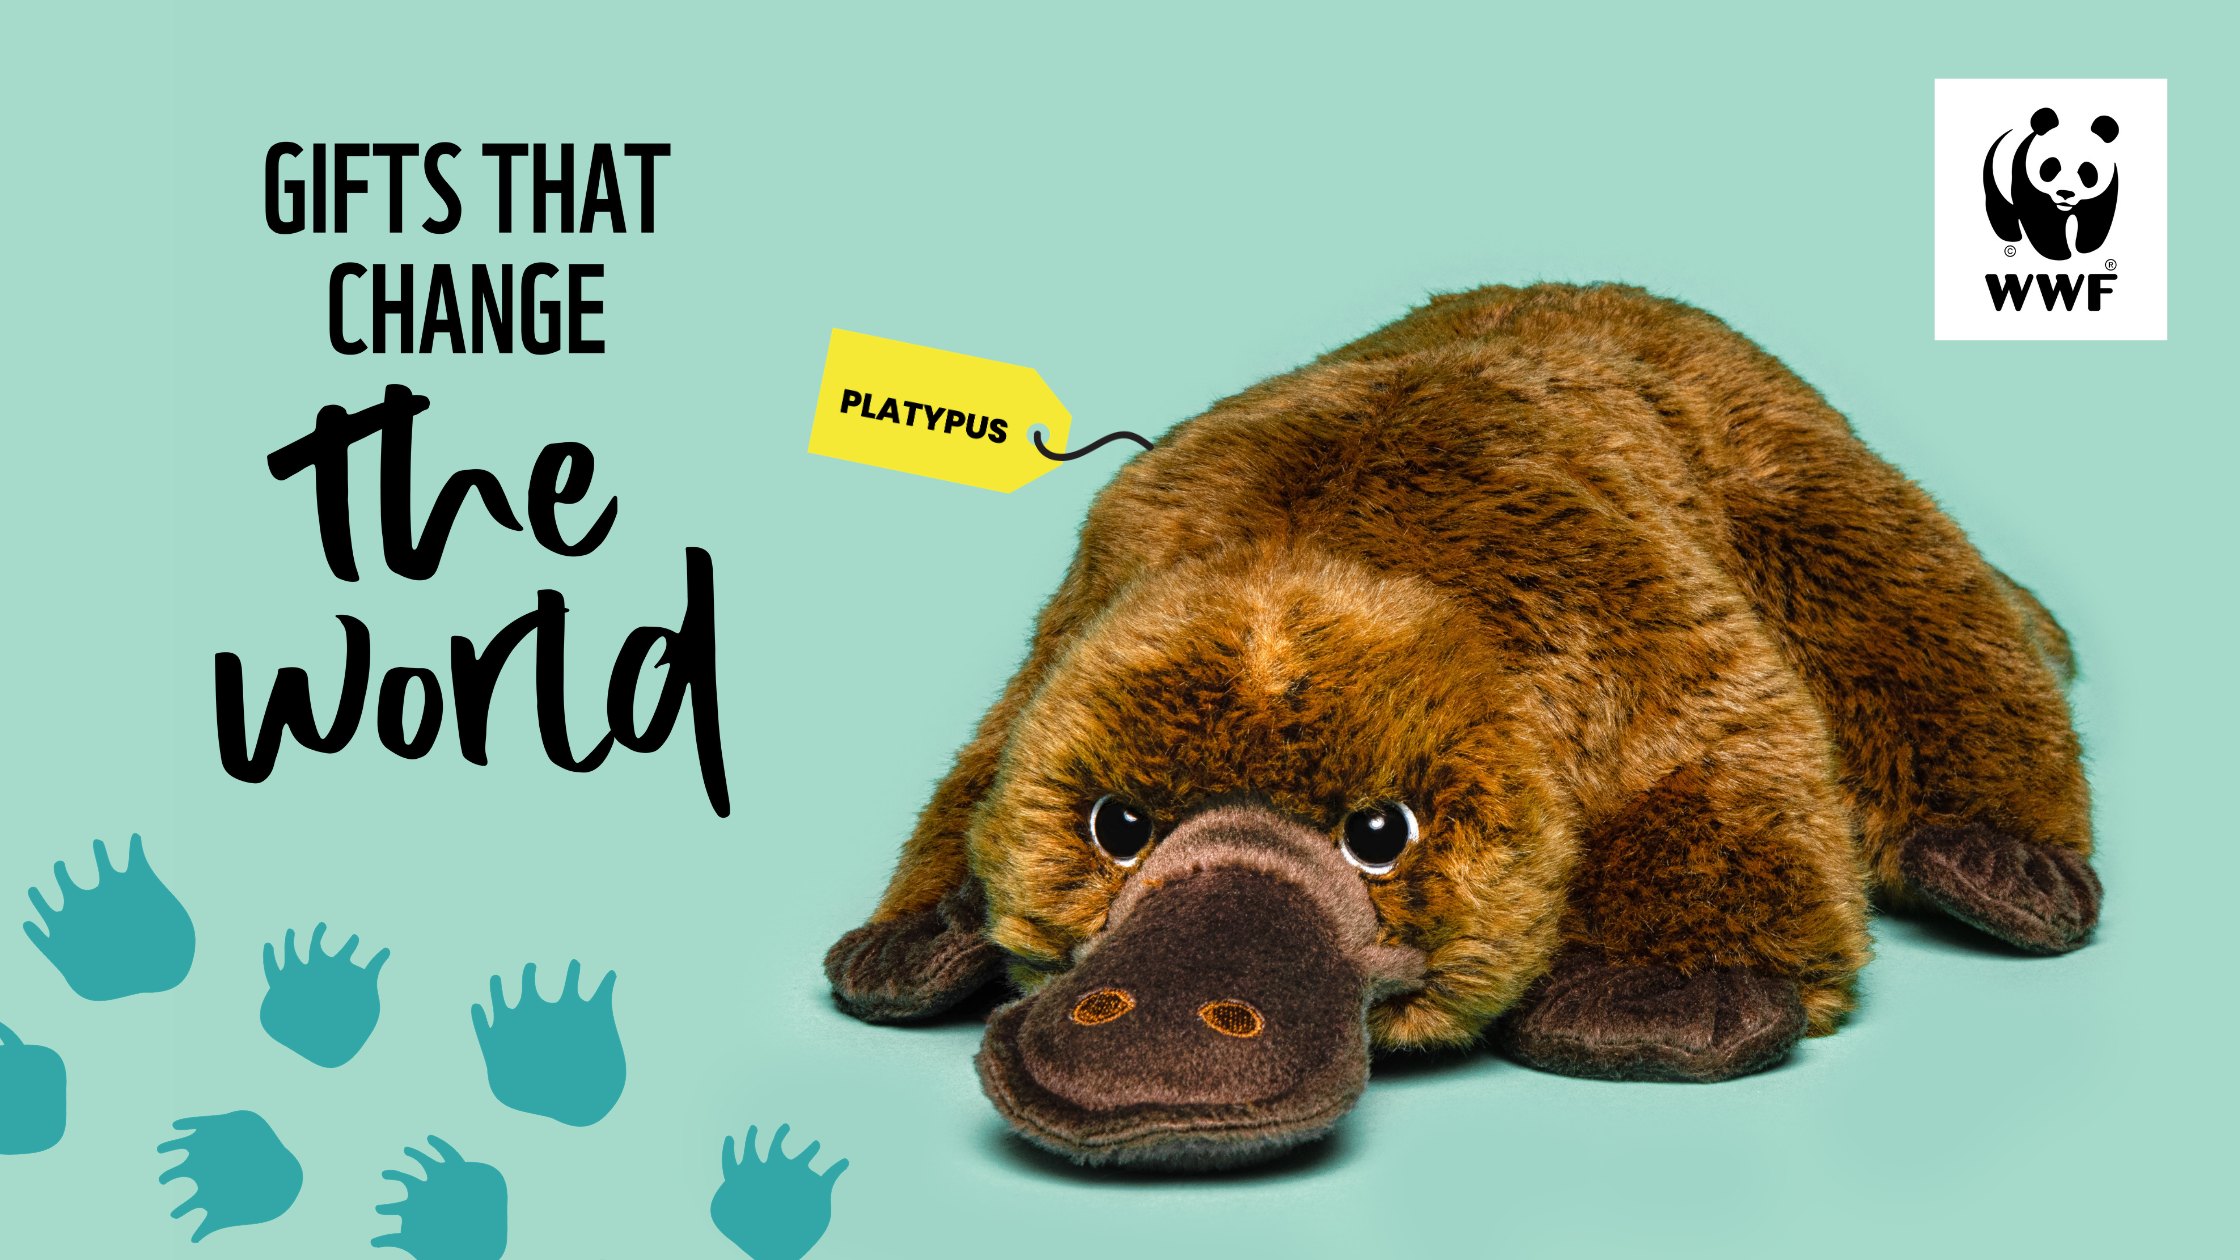 MEDIA ADVISORY: WWF-Canada's guide to Gifts That Change the World